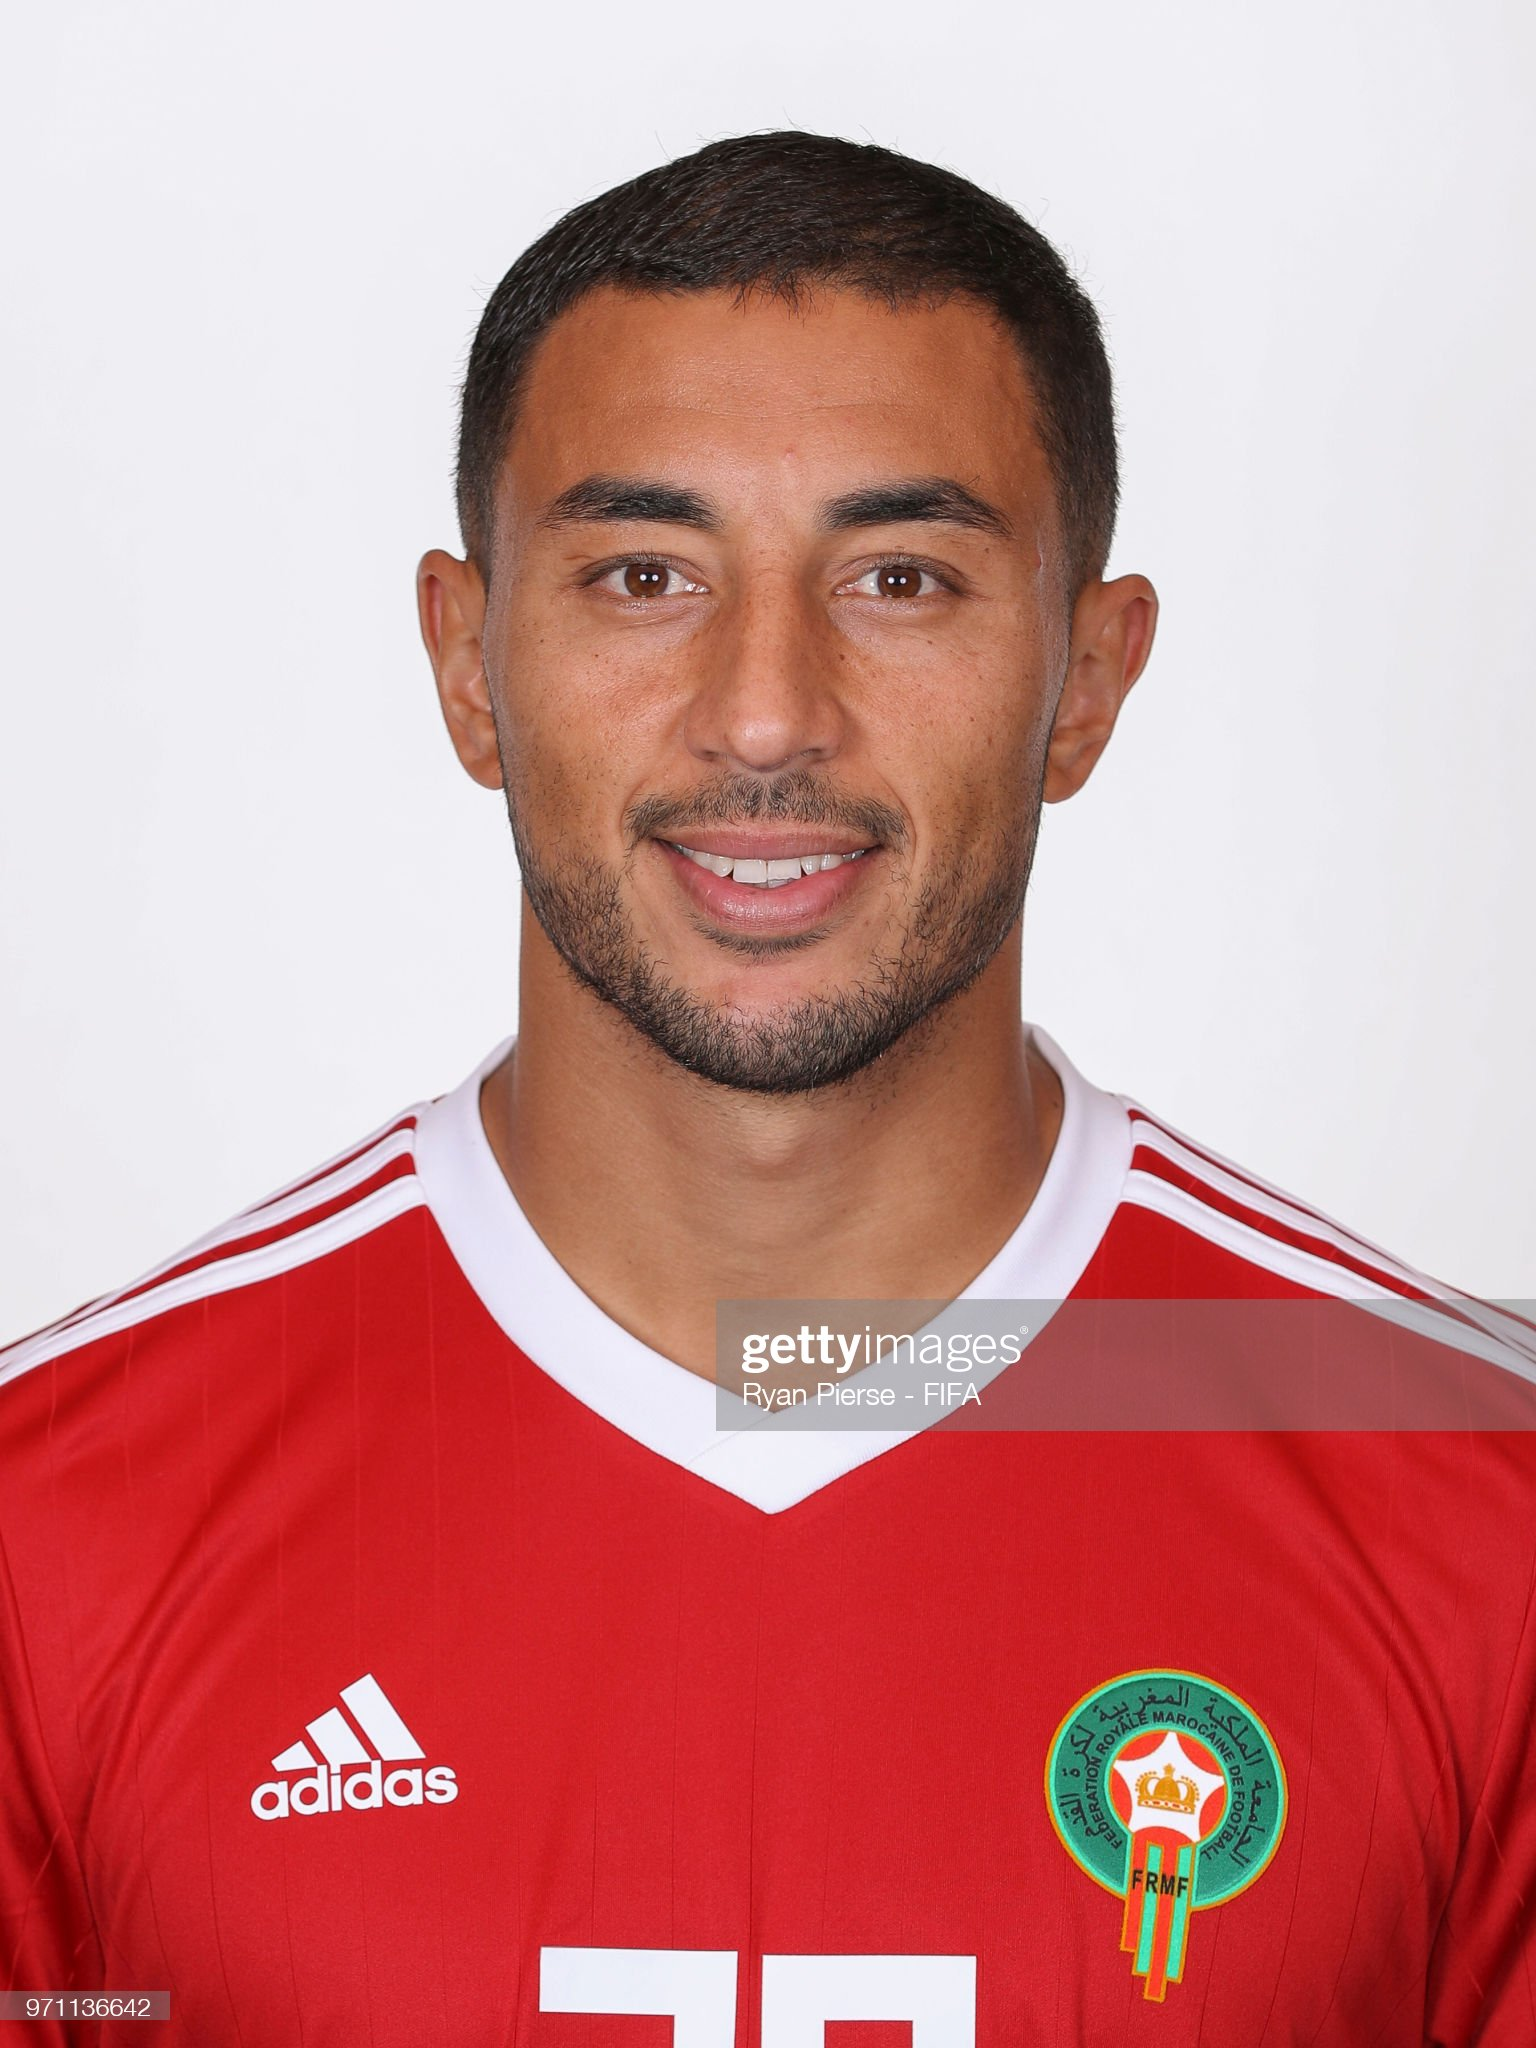 Norteafricanos Aziz-bouhaddouz-of-morocco-poses-during-the-official-fifa-world-cup-picture-id971136642?s=2048x2048